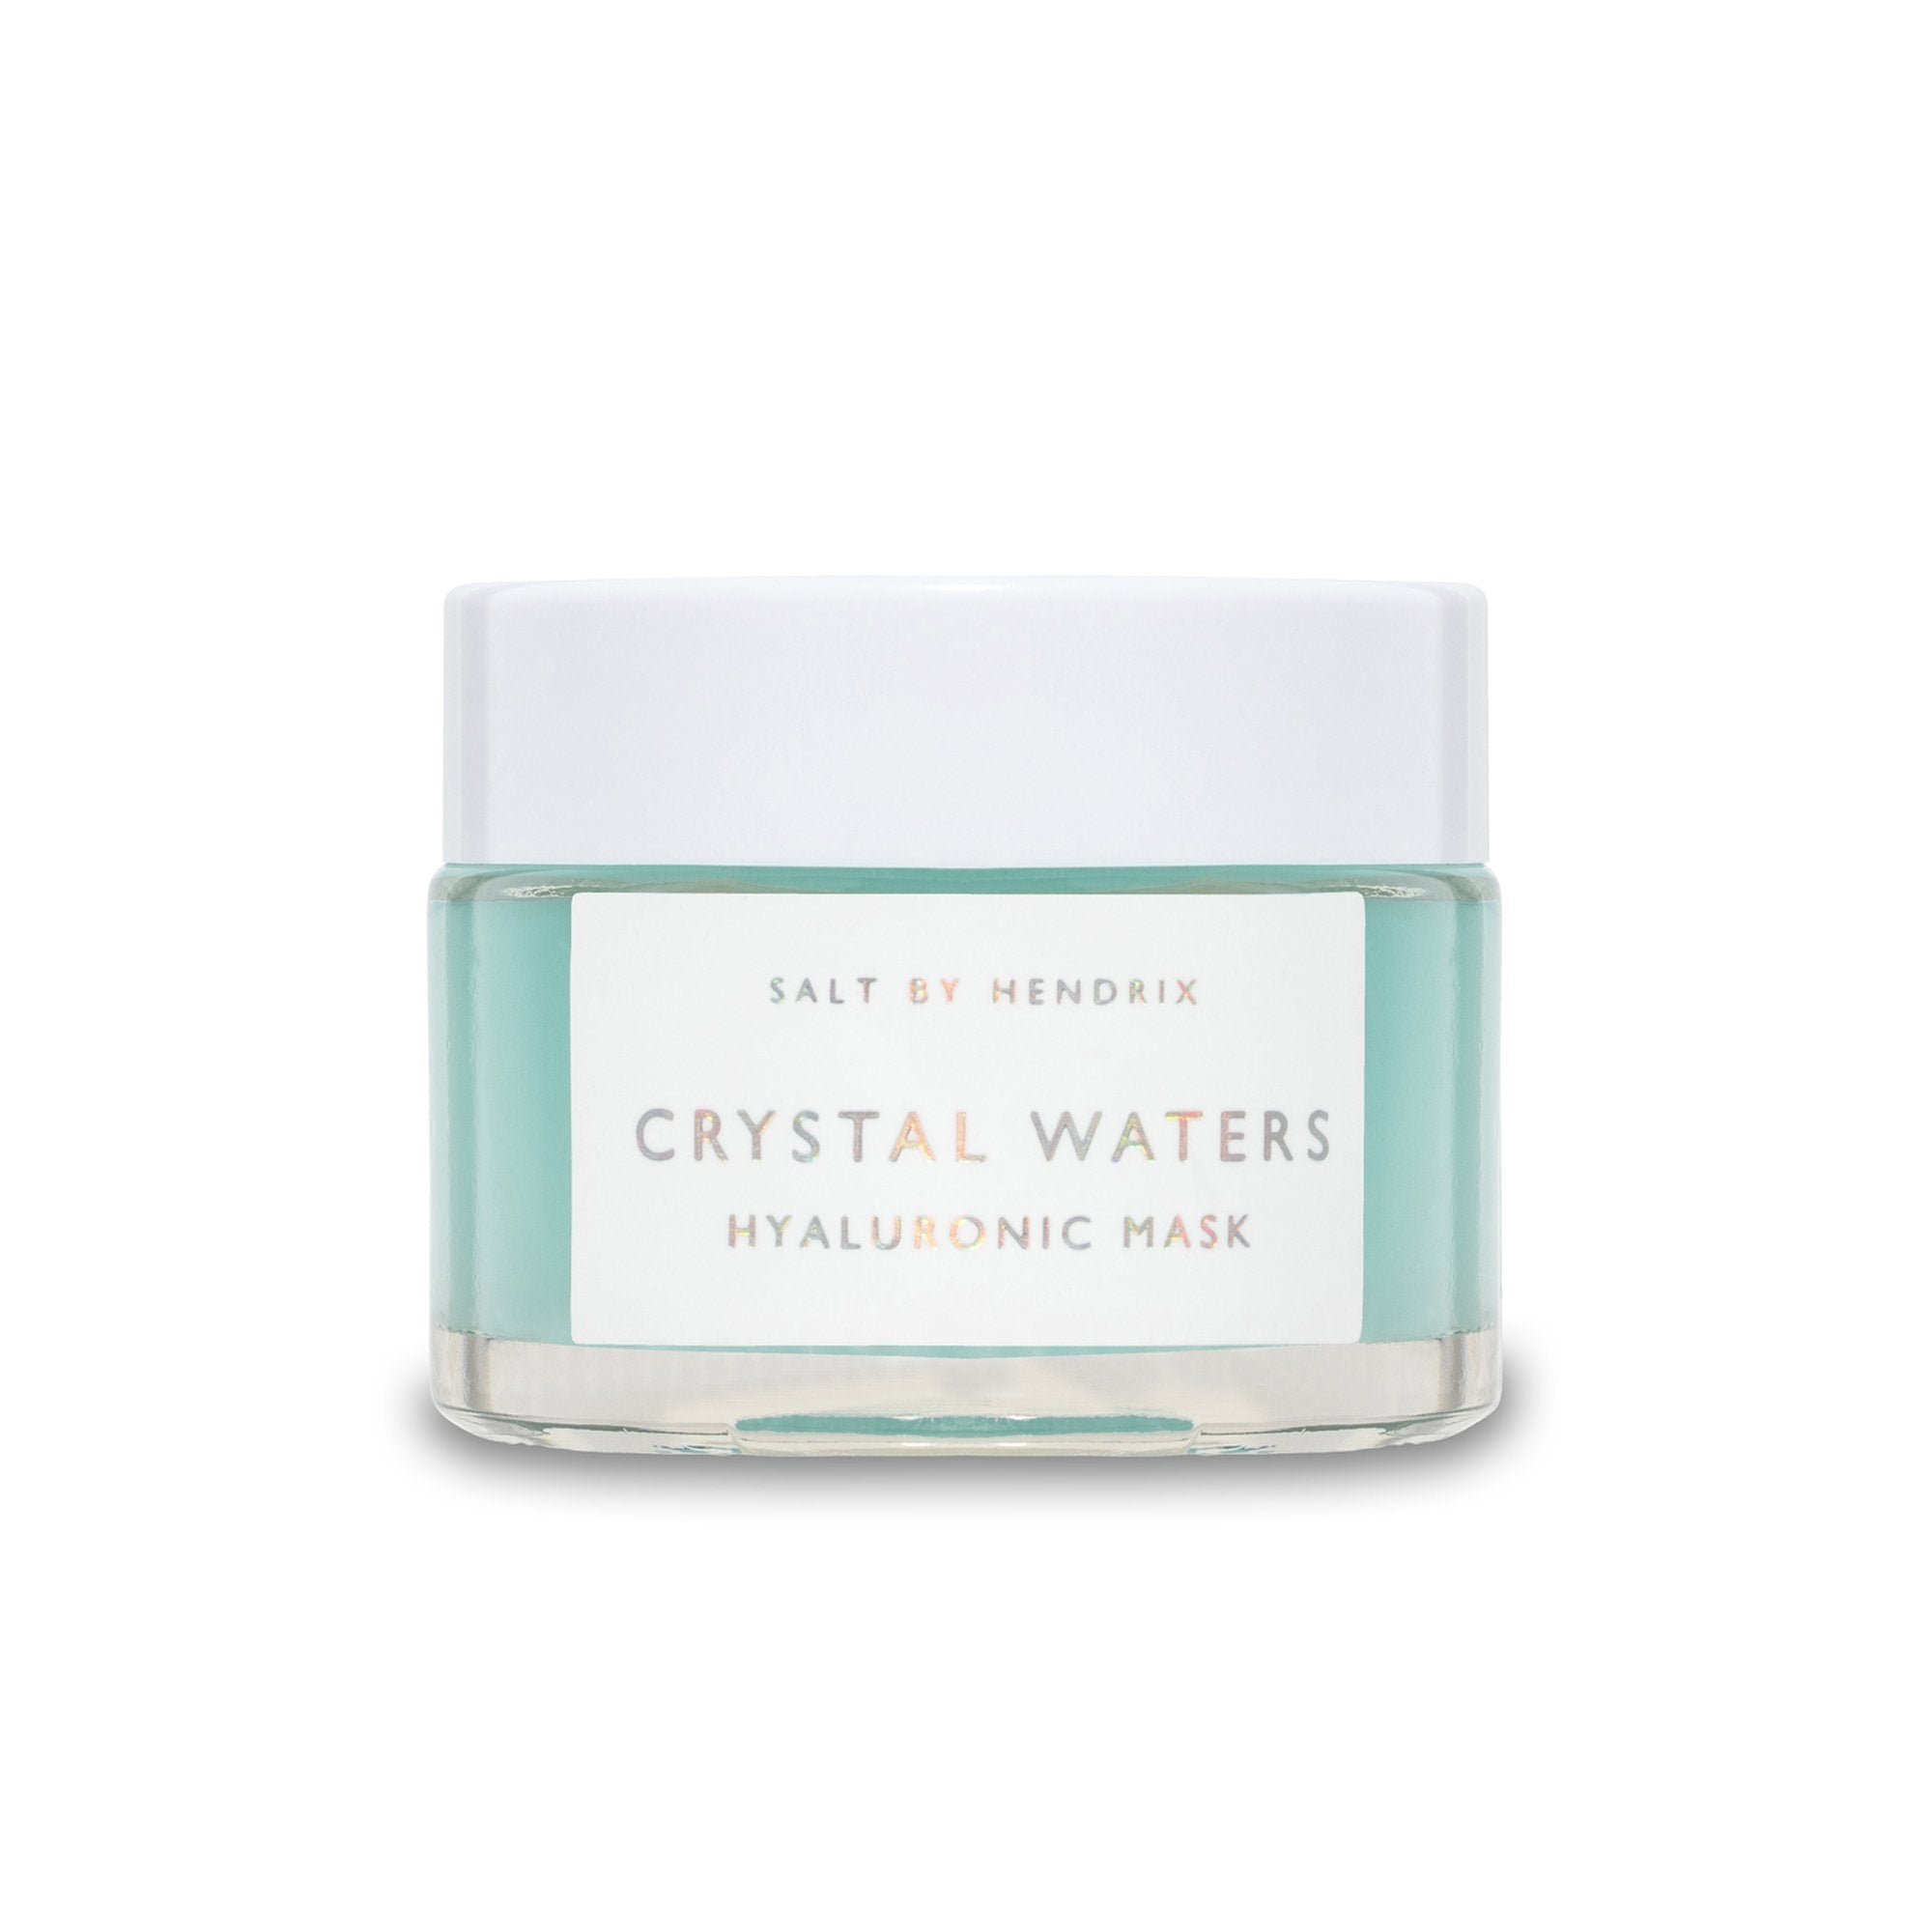 Salt by Hendrix Crystal Waters Face Mask 40ml product shot